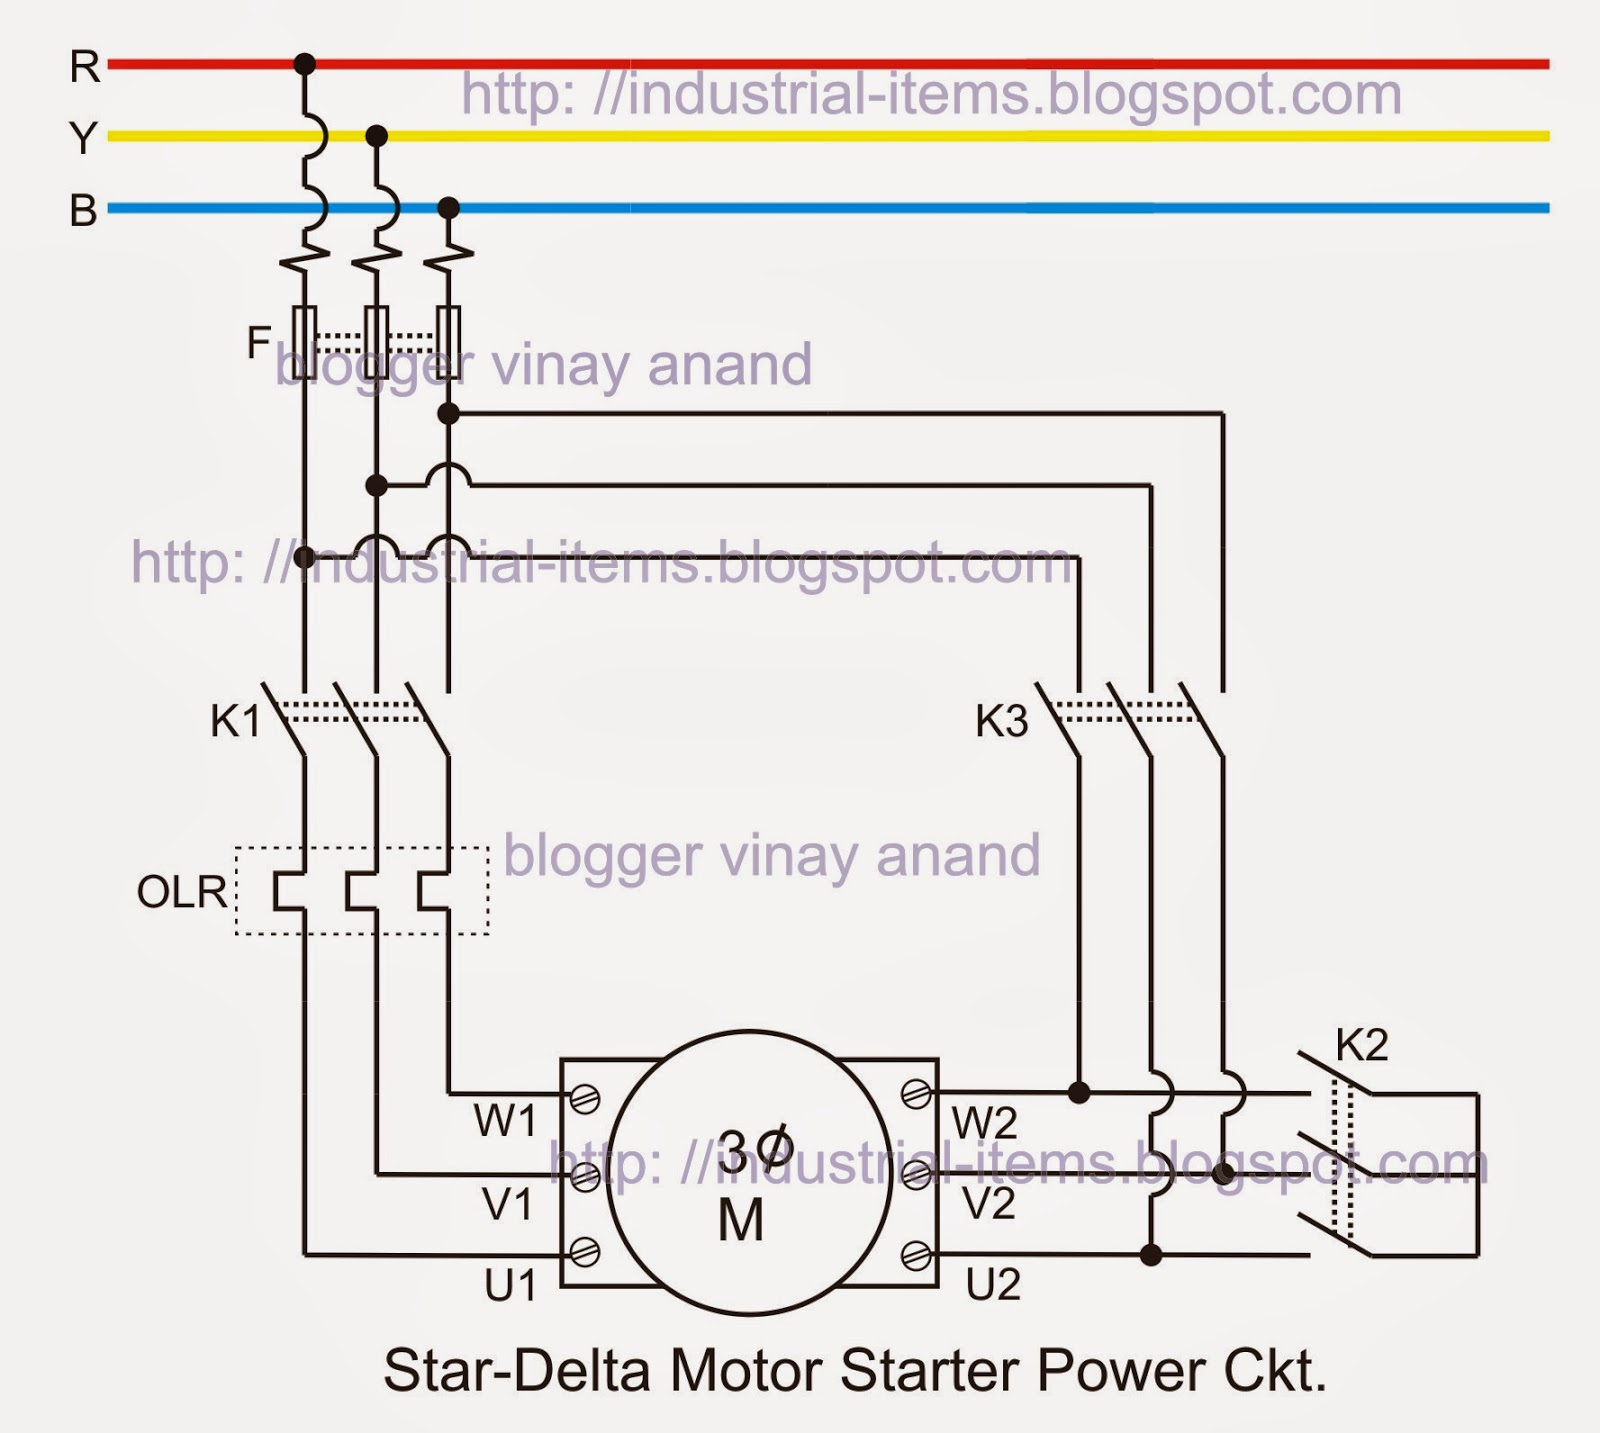 Star+Delta+power+Ckt. gk, current affairs, tutorials & articles star delta starter theory wiring diagram of star delta starter at nearapp.co